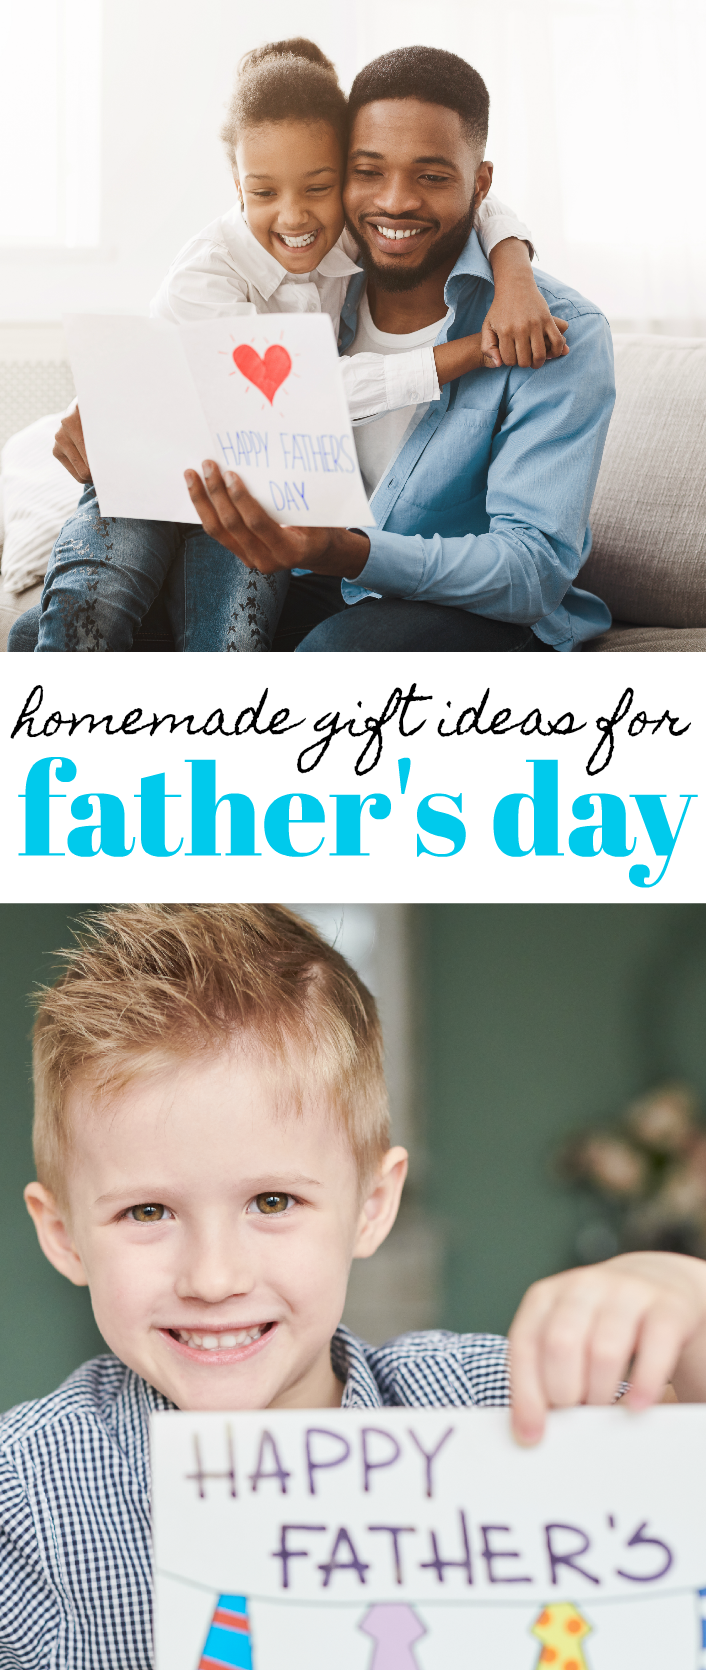 Father's Day gift ideas and free printable banner